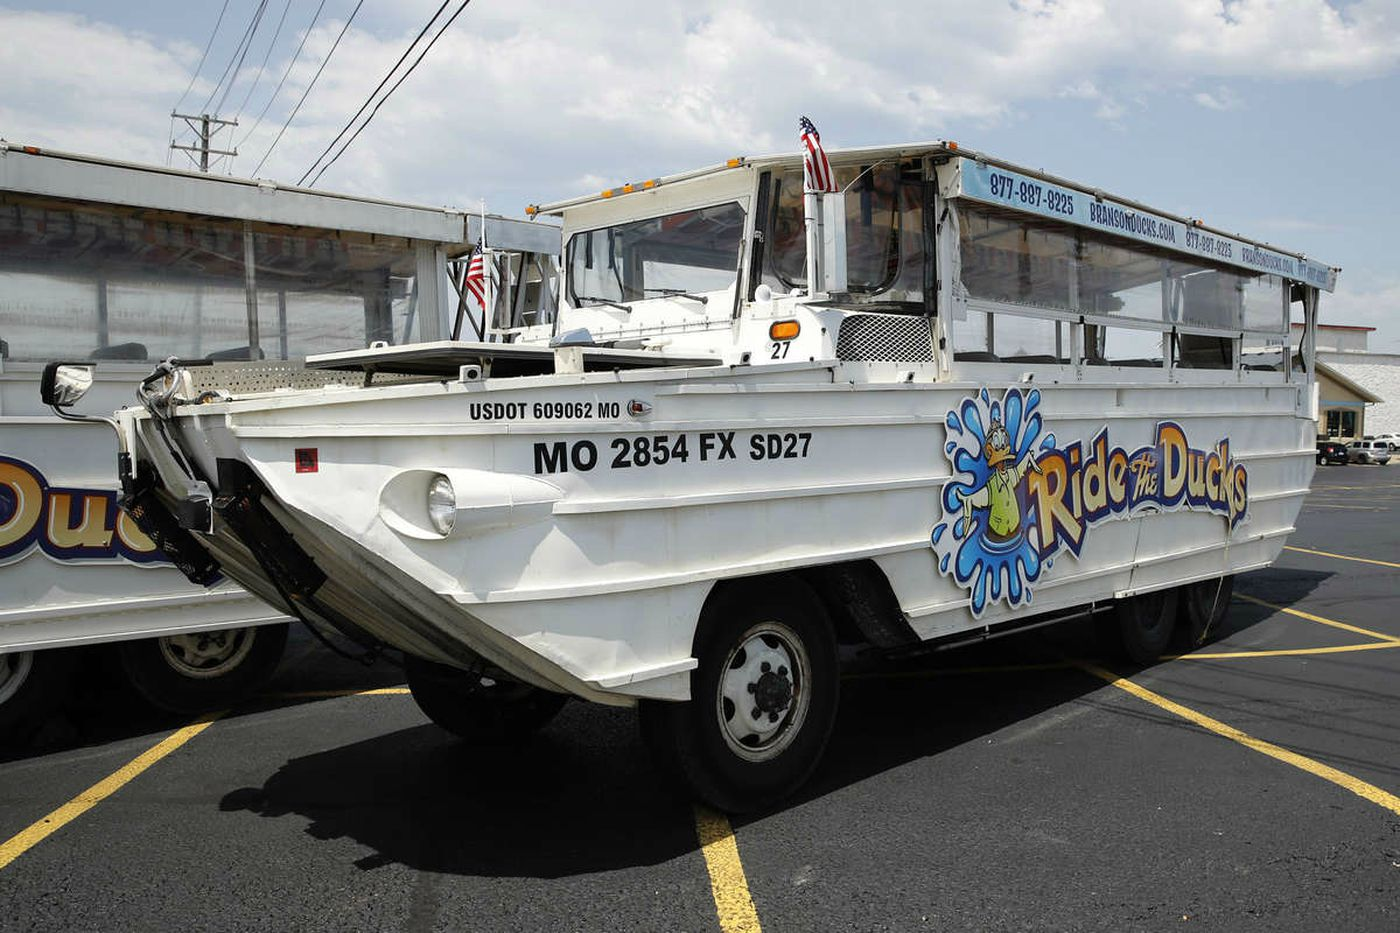 Philly firm files $100M lawsuit in fatal Missouri duck boat sinking